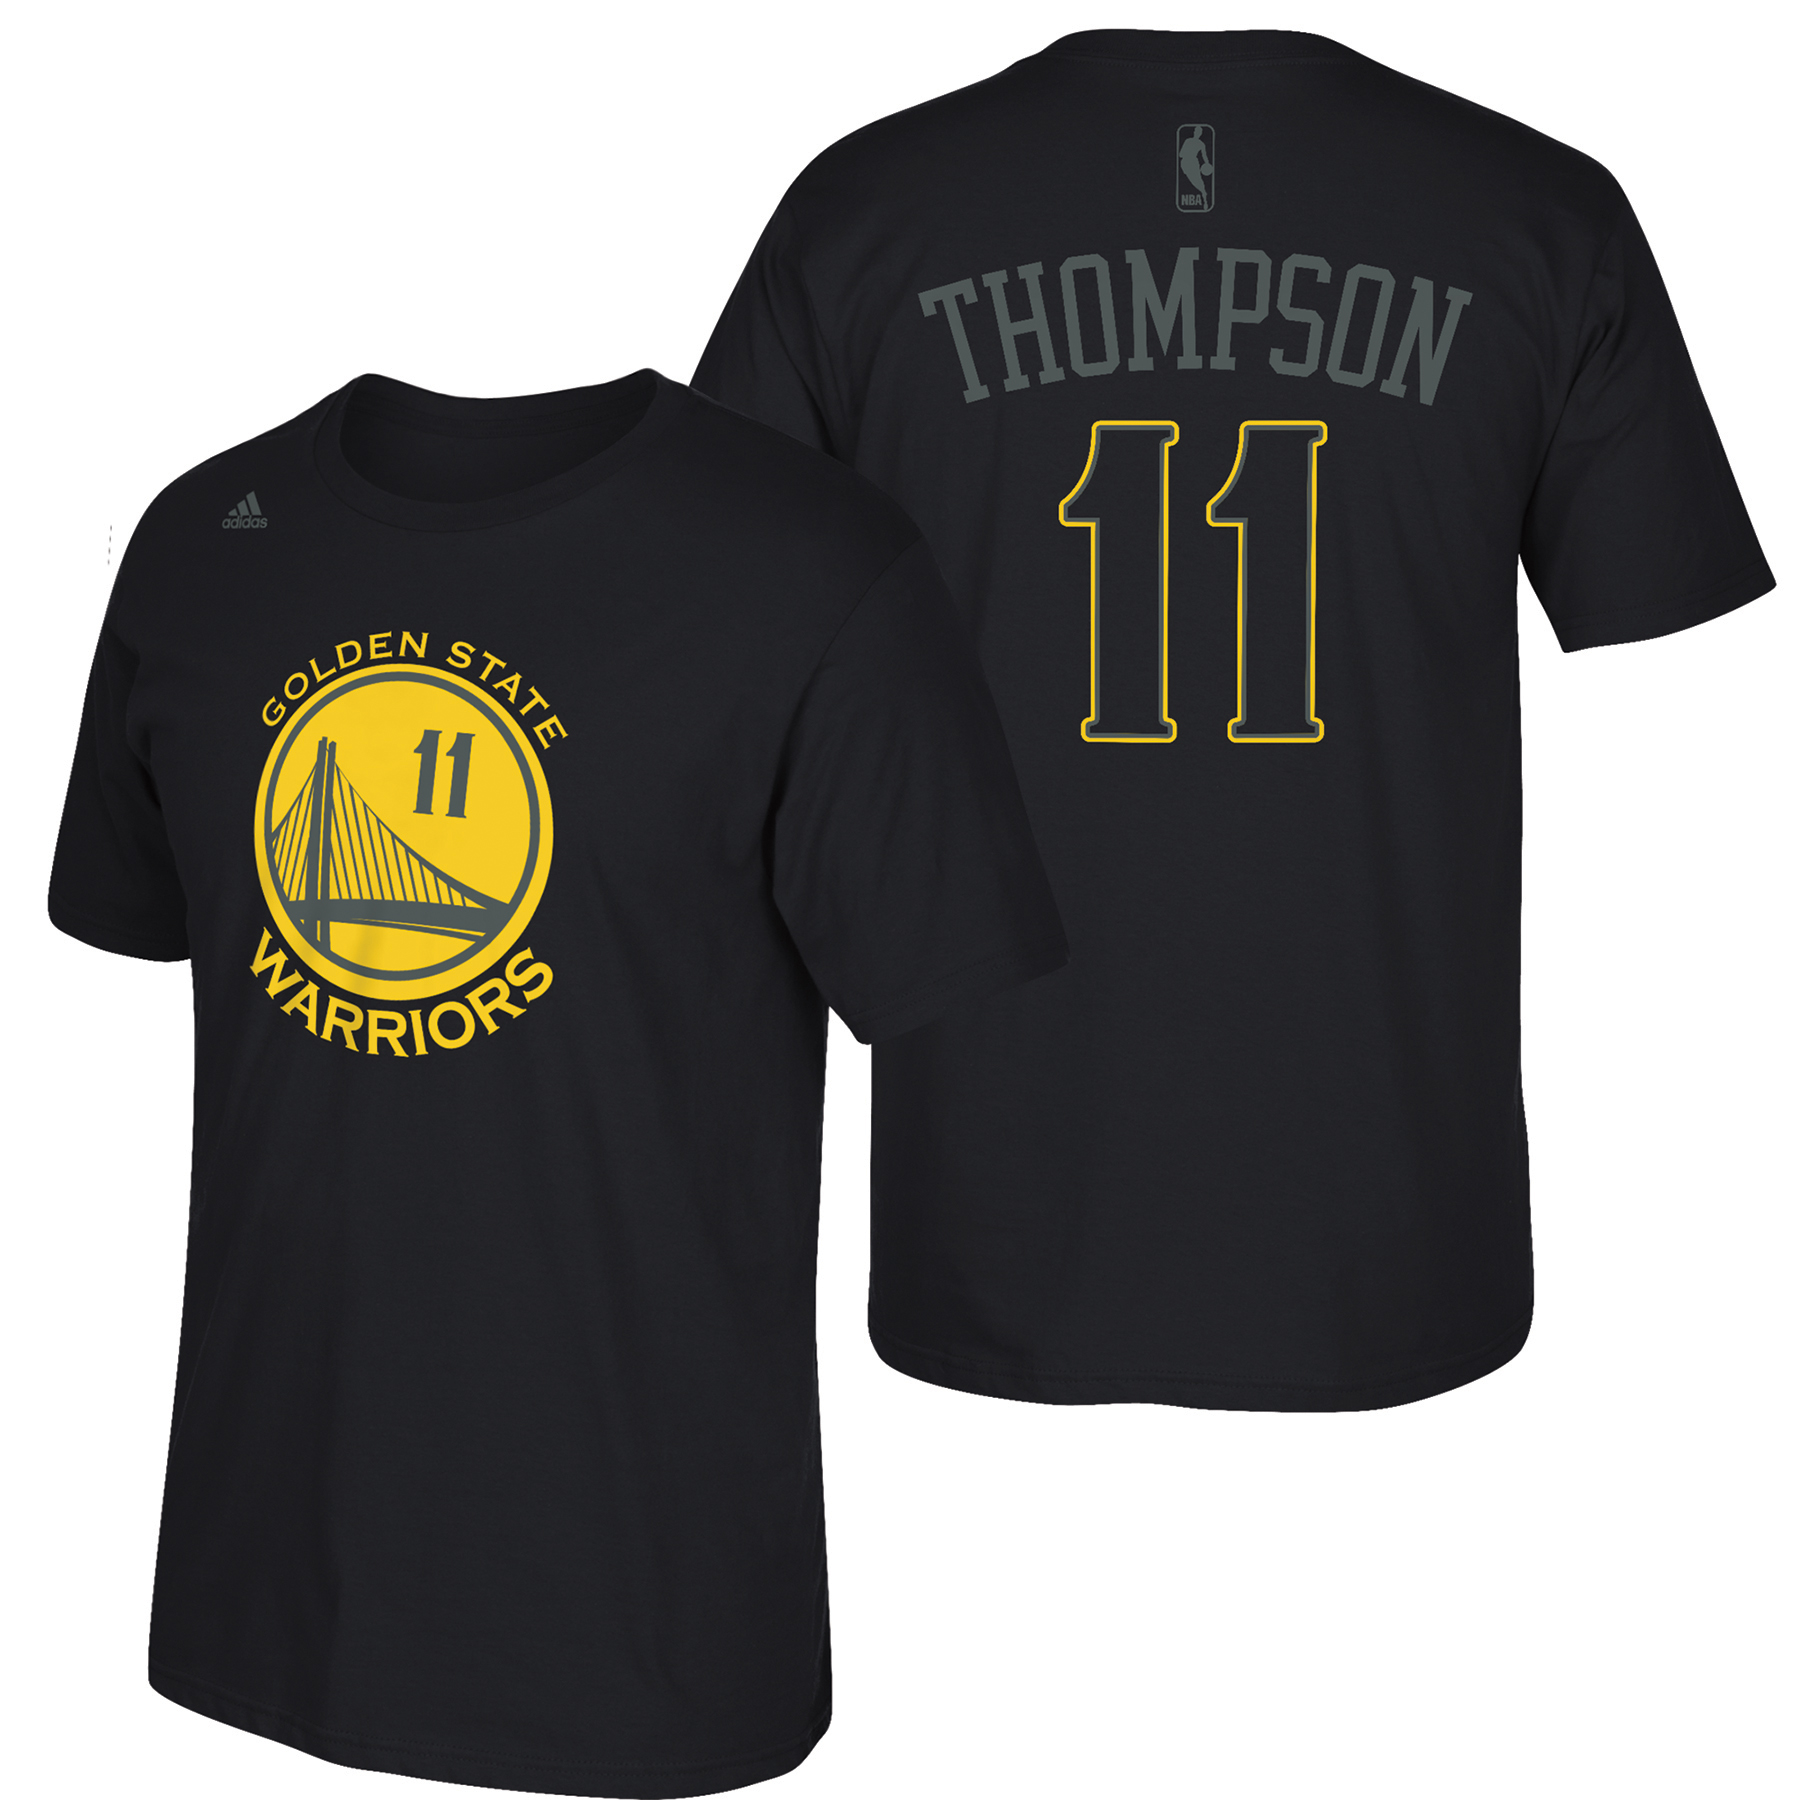 Golden State Warriors adidas Hyper Name & Number T-Shirt - Klay Thomps